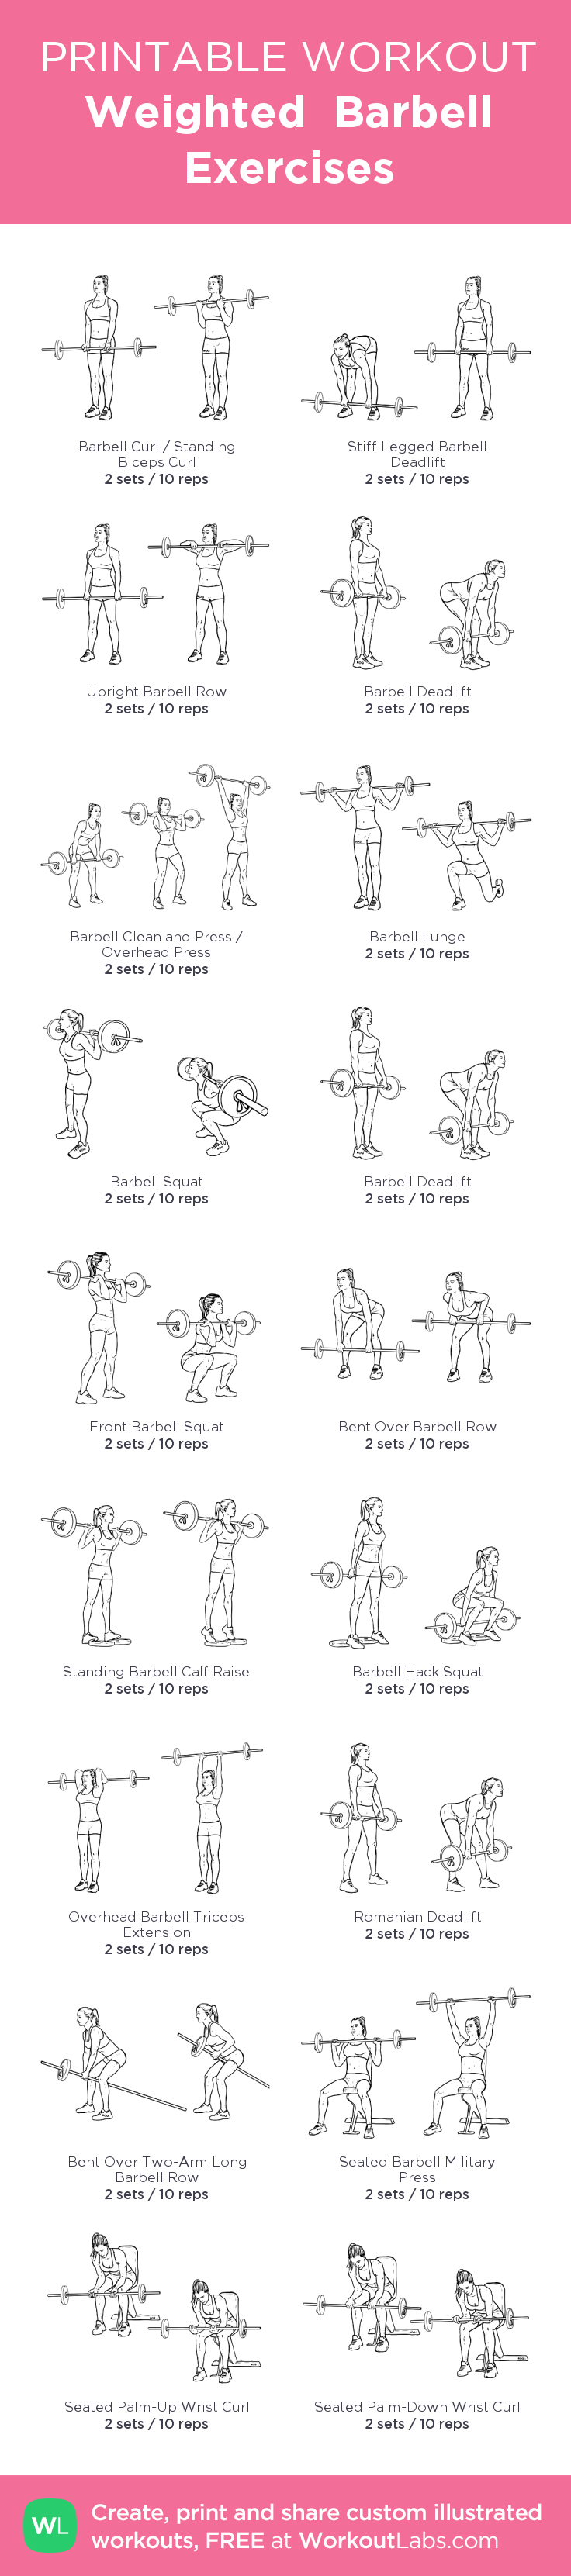 Barbell Training A Sample Training Program From Getting Stronger By Bill Pearl